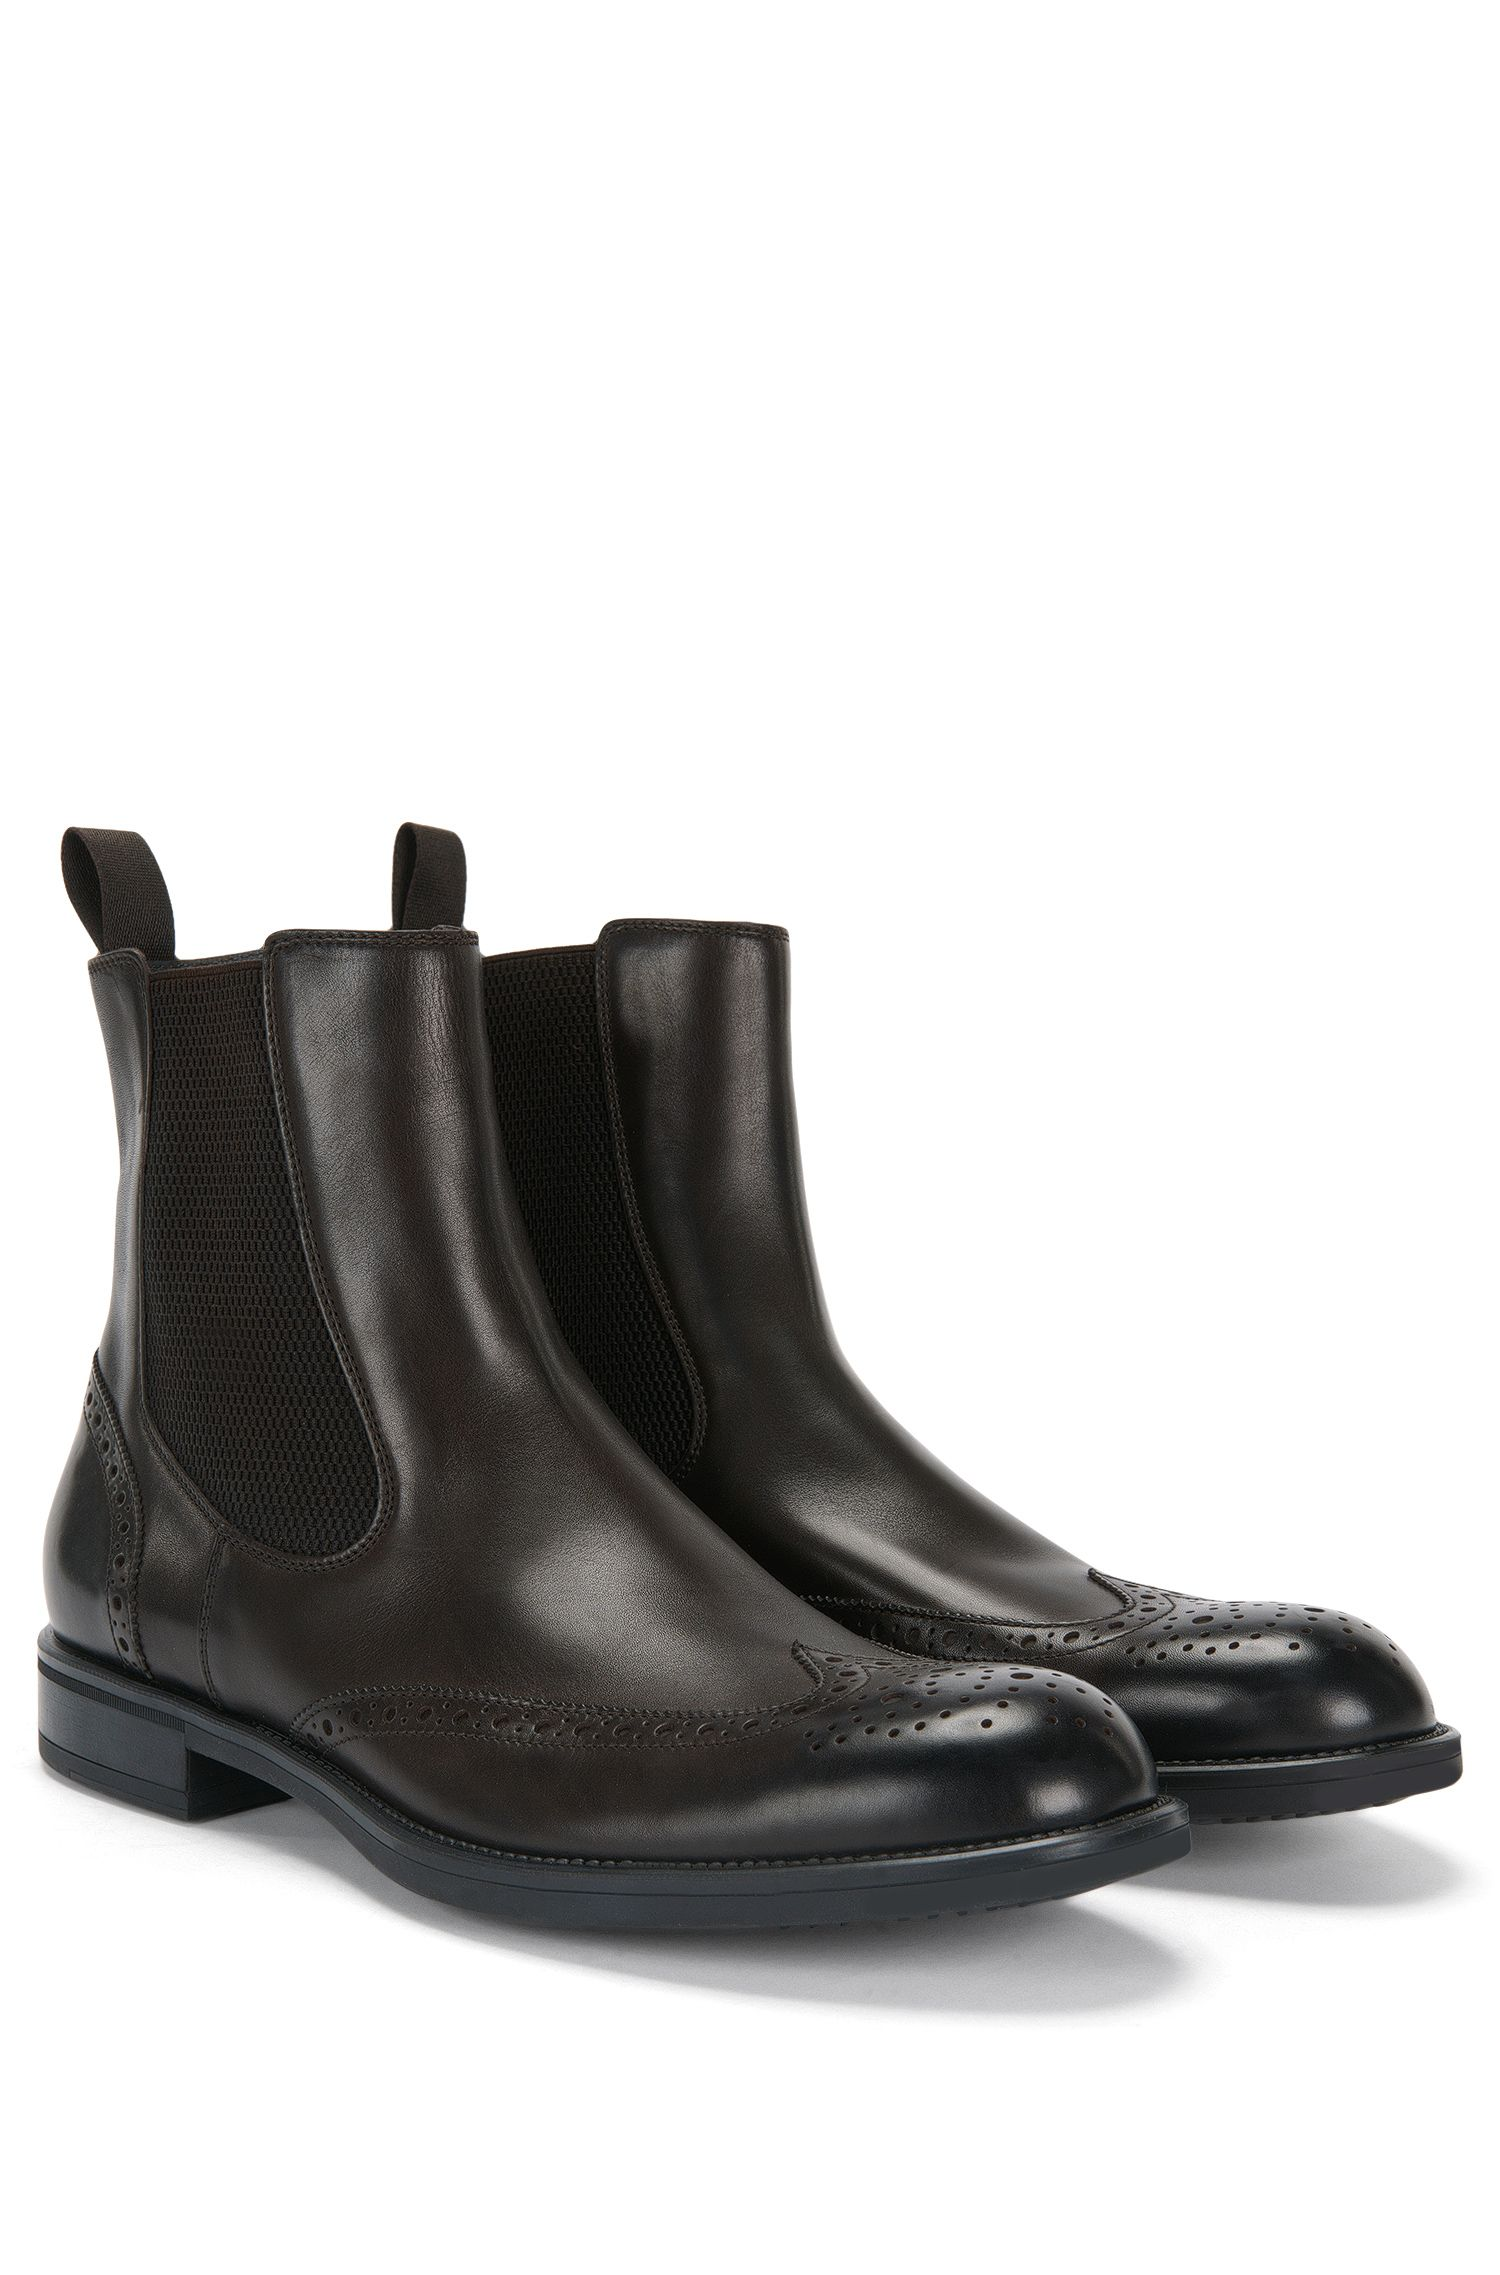 'Kenth Cheb Itwtb' | Italian Calfskin Pull On Brogue Boots